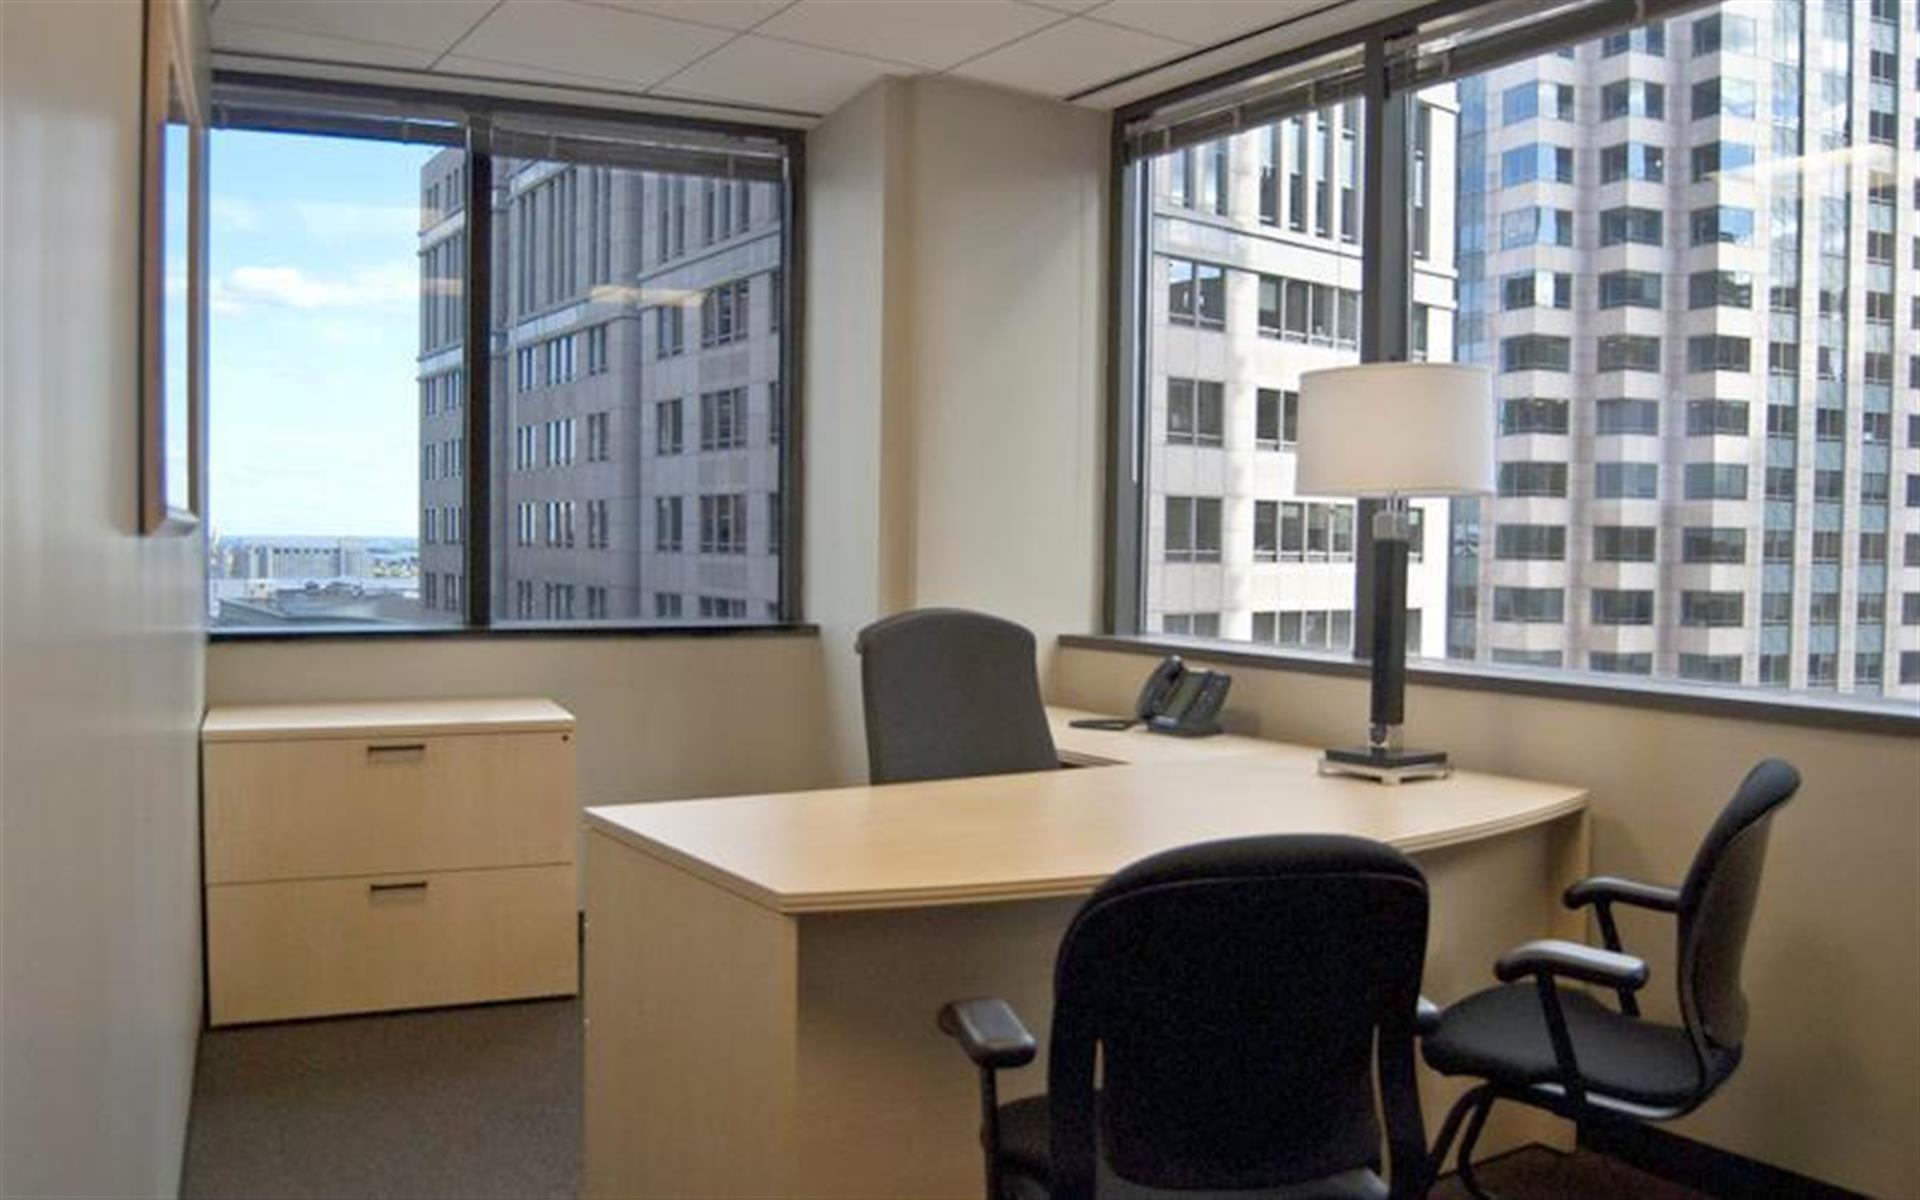 Intelligent Office - Boston - Monthly Team Office for 4